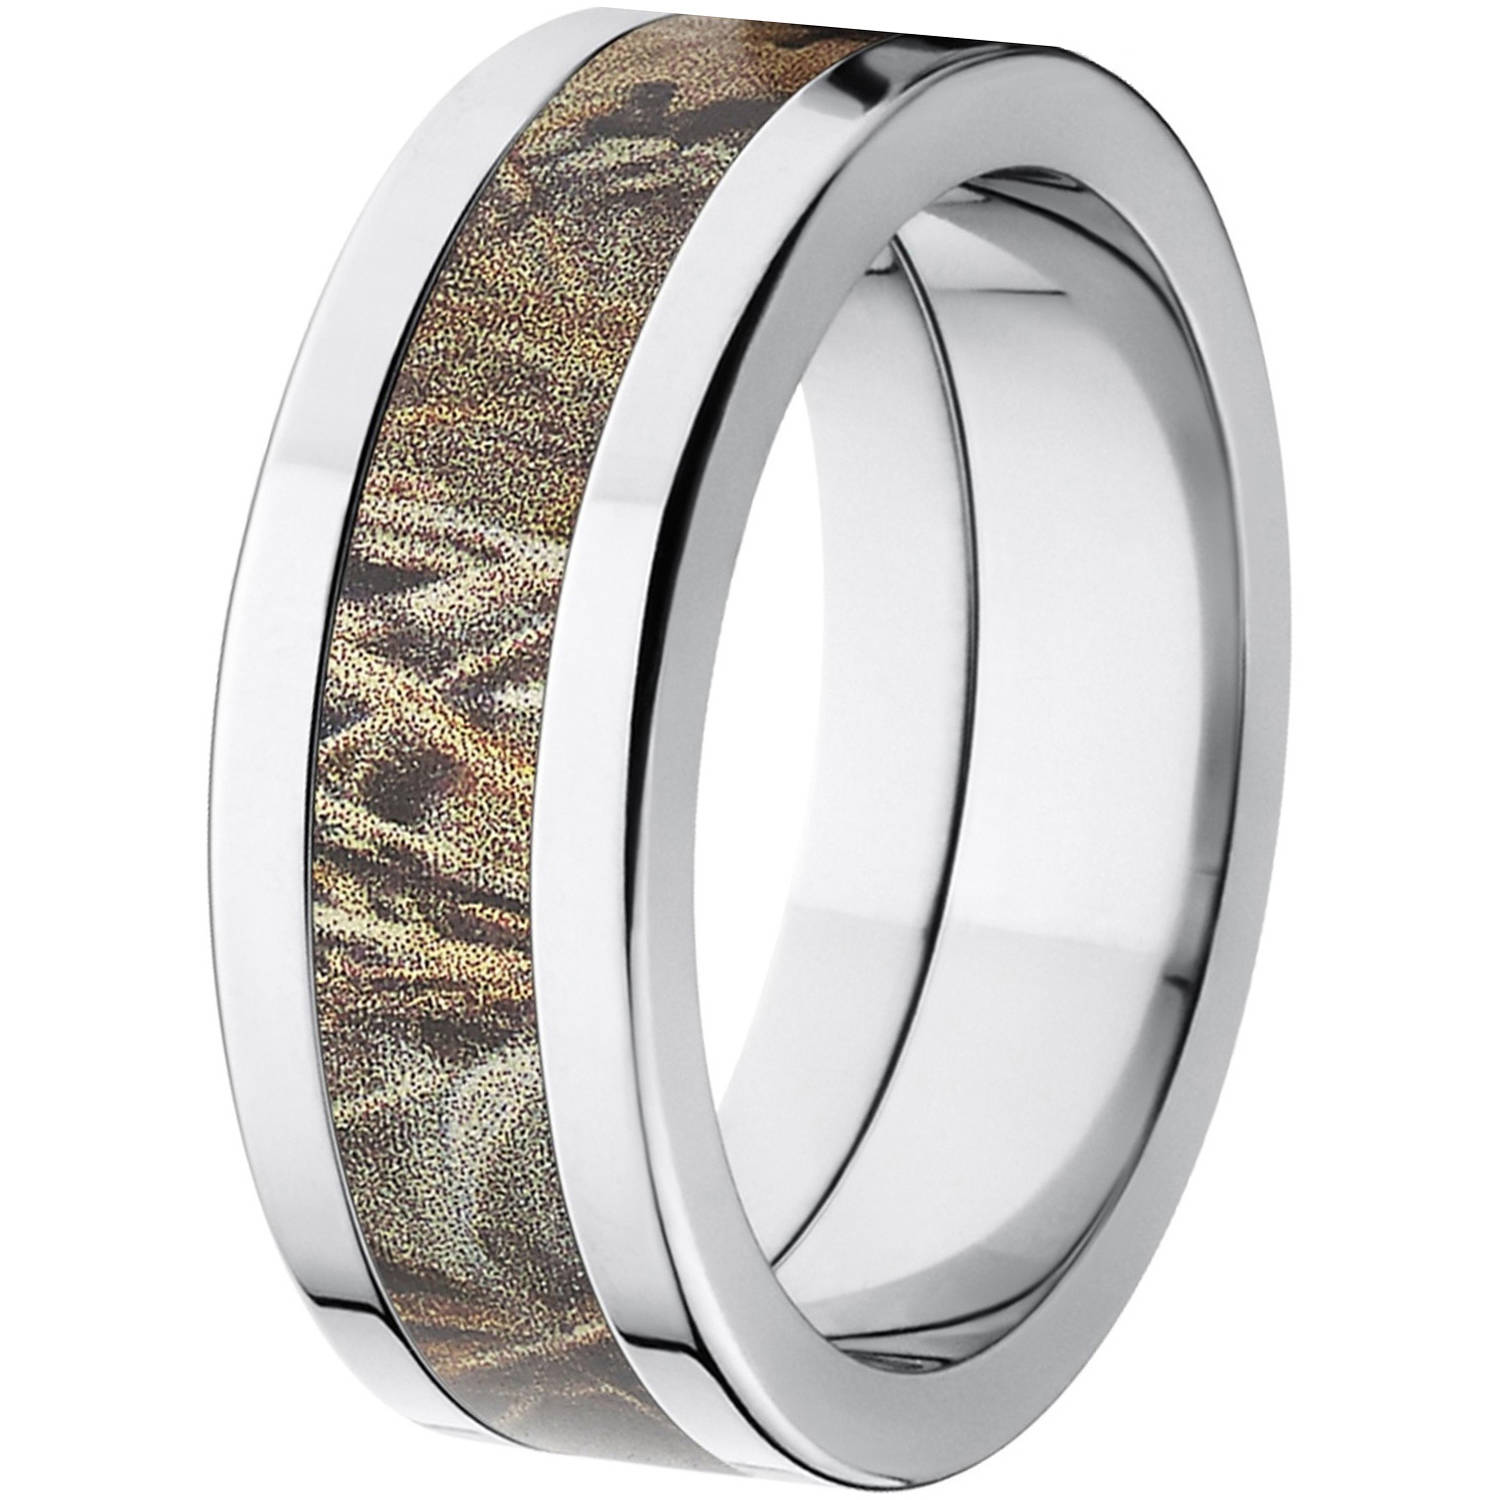 Realtree Max 4 Men s Camo 8mm Stainless Steel Wedding Band